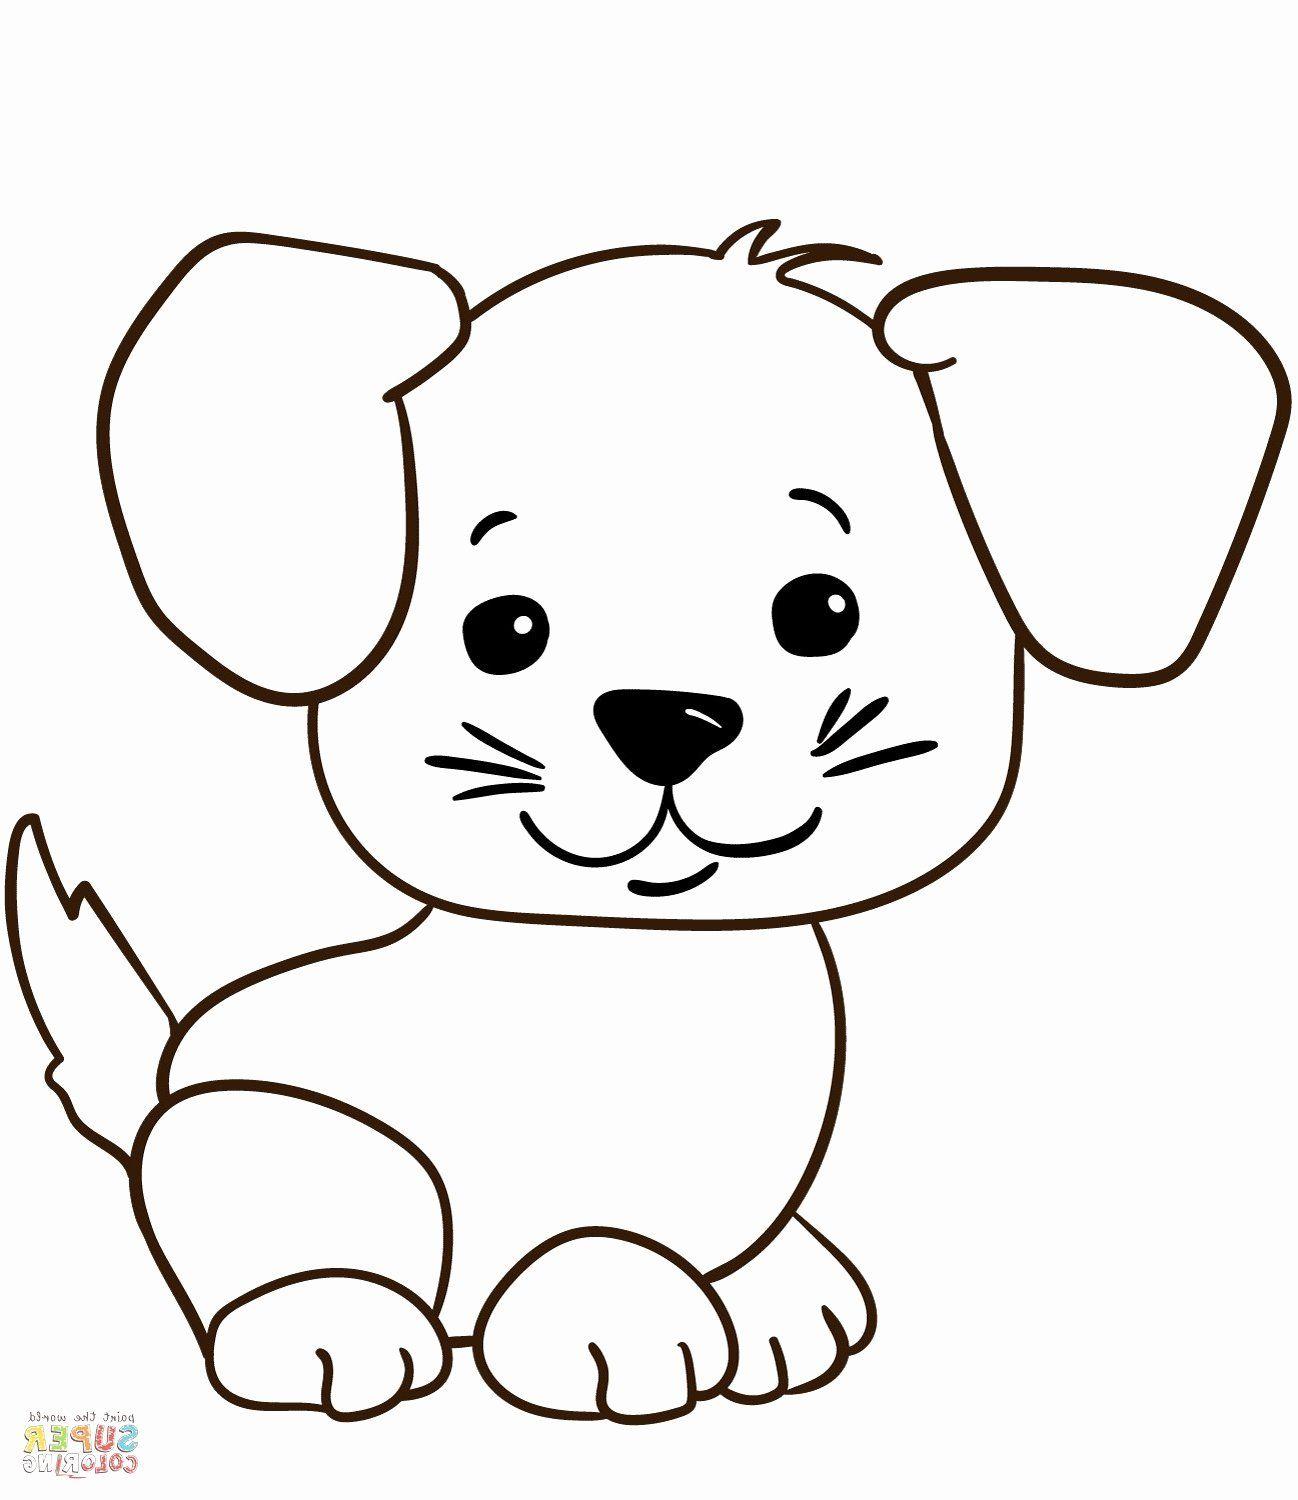 Free St Patricks Day Coloring Pages Best Of 26 New Gallery I Am The Bread Life Coloring Page In 2020 Puppy Coloring Pages Dog Coloring Page Animal Coloring Pages